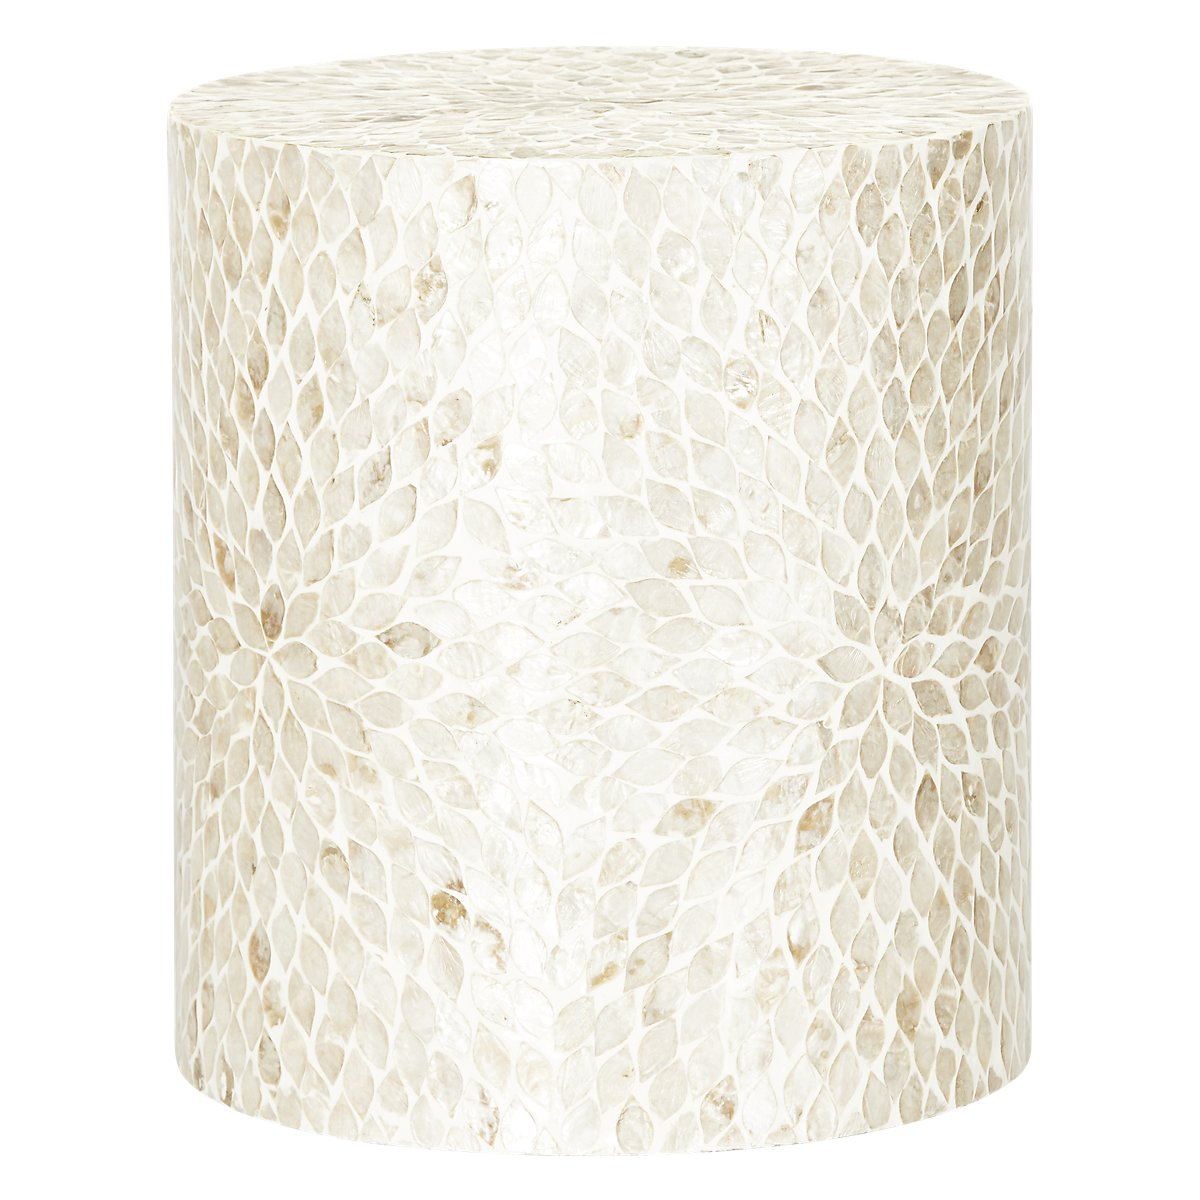 Accent Pieces For Home: Capiz Light Beige Accent Table